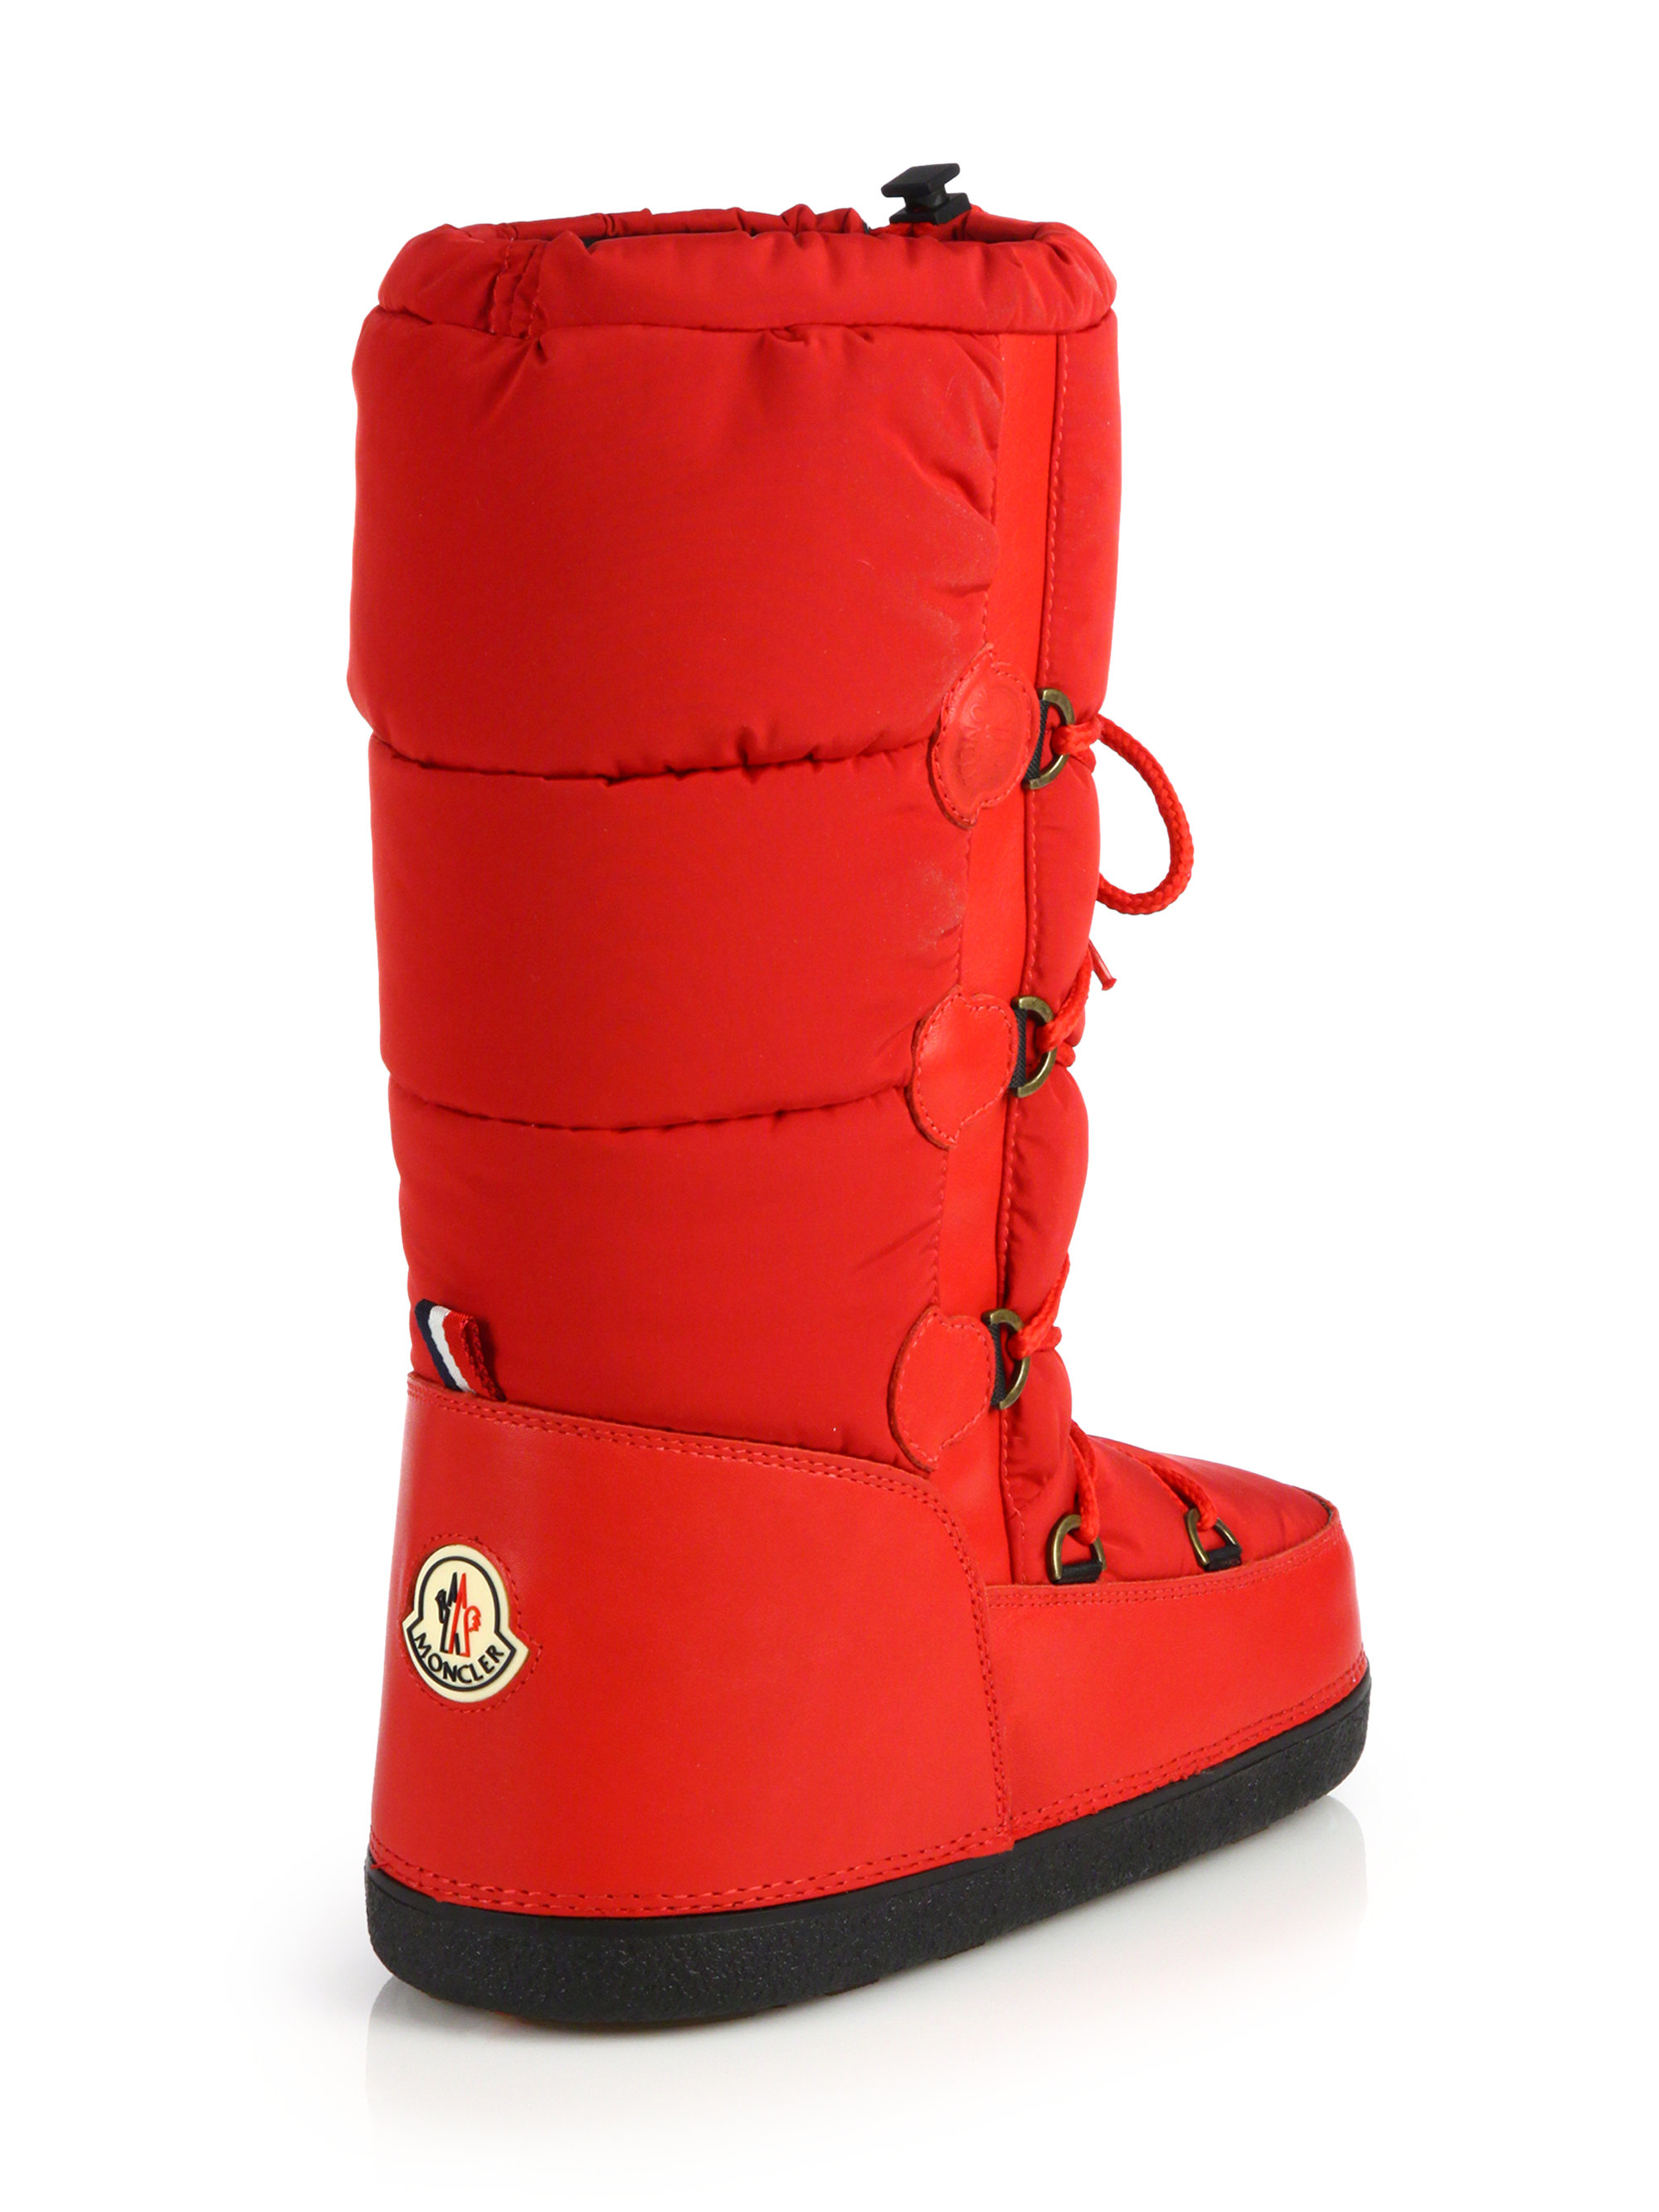 d67a61155 Moncler Quilted Lace-Up Moon Boots in Red - Lyst